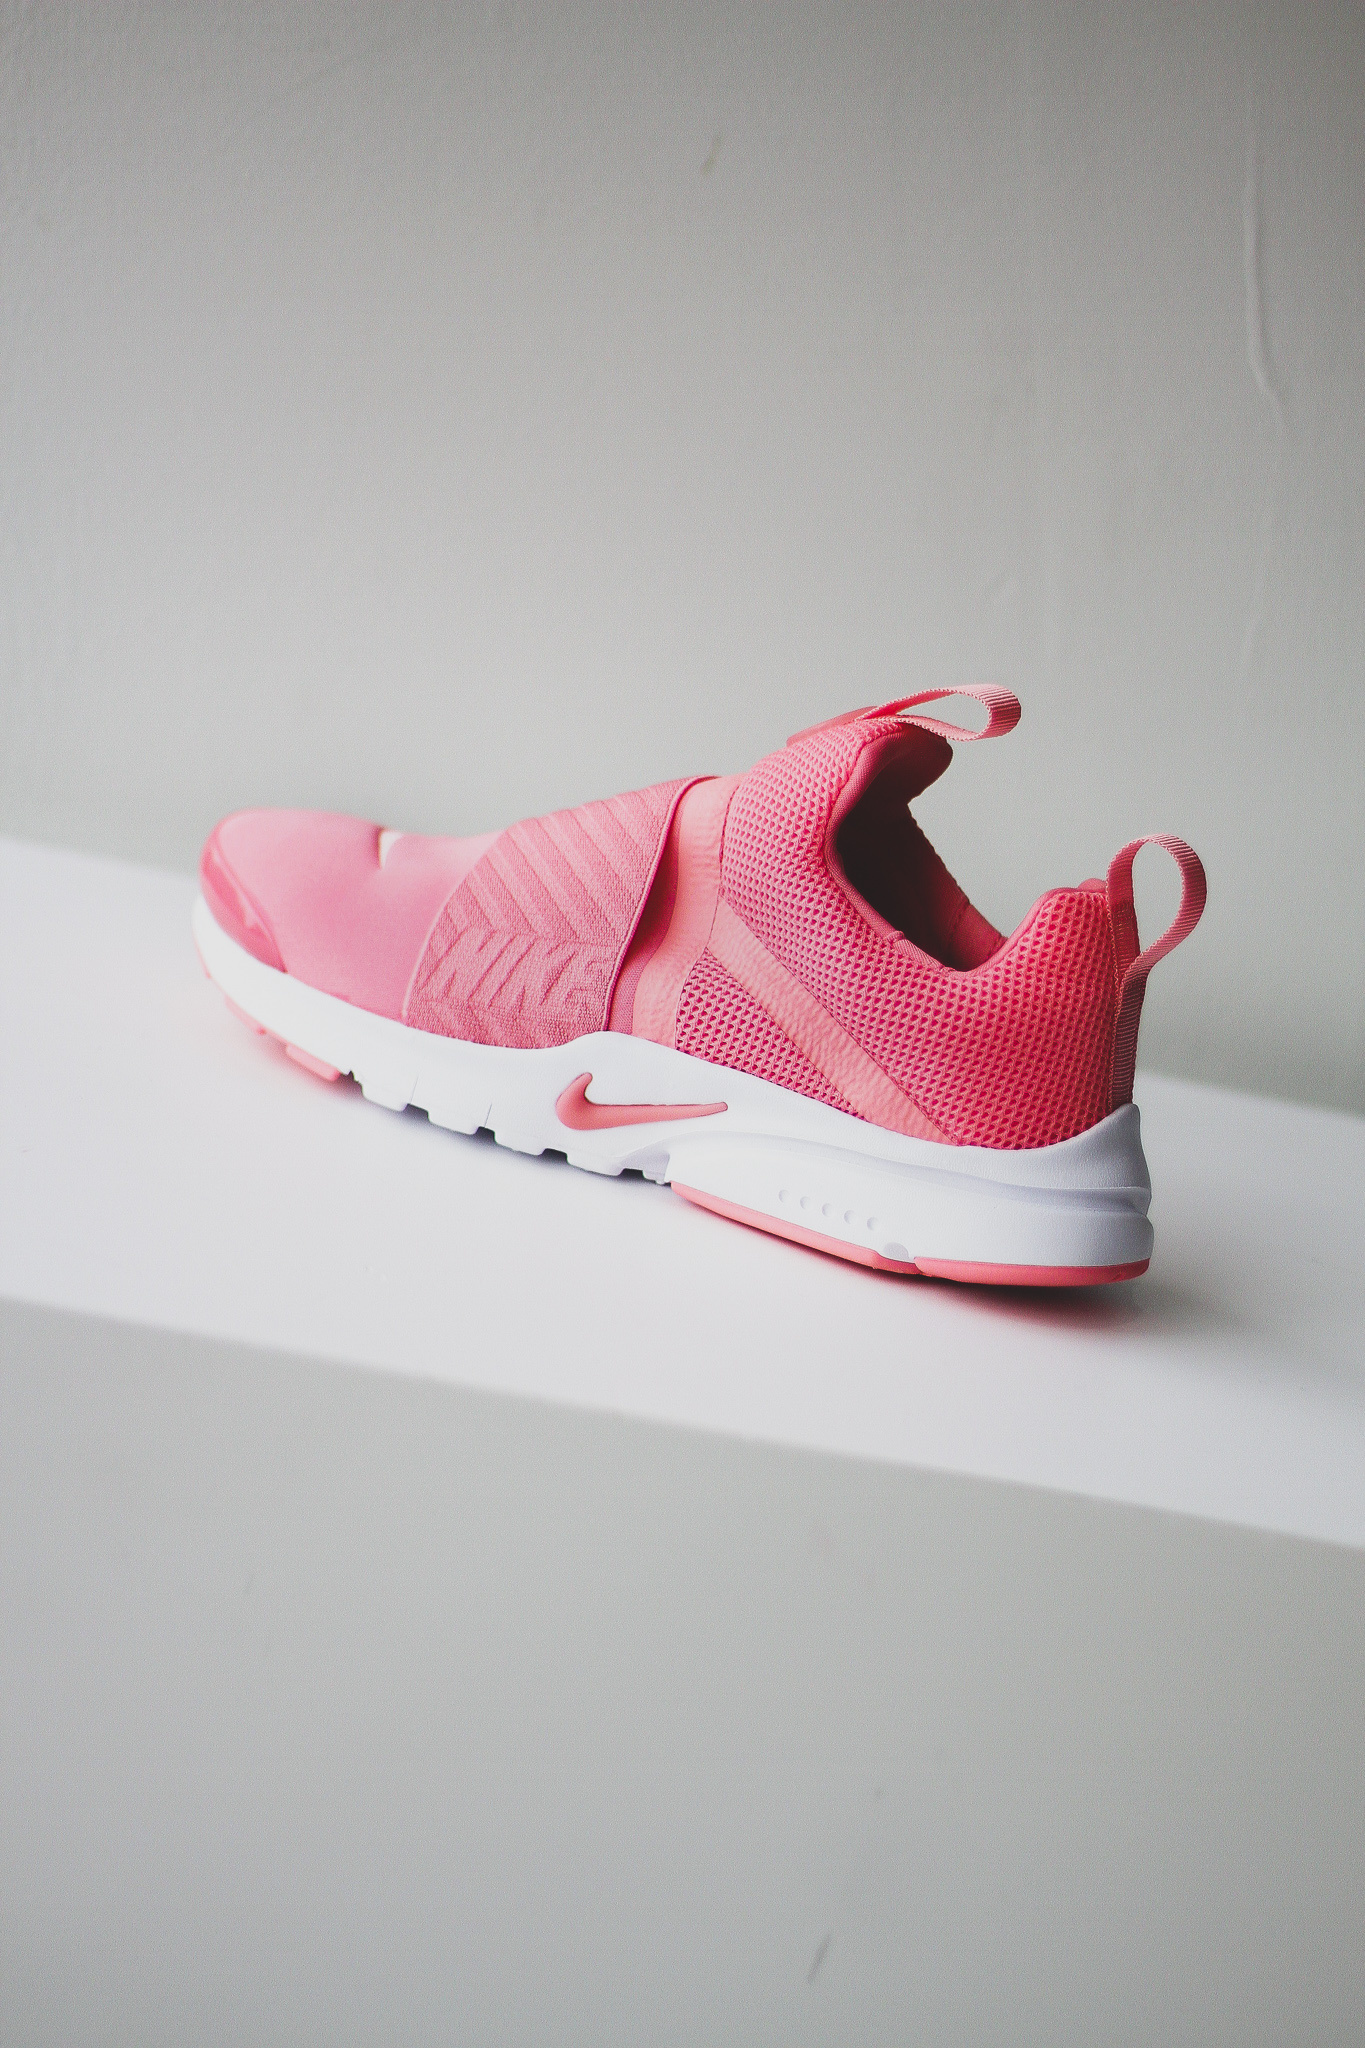 promo code d1165 5dc93 separation shoes 550e4 02cc1 pink and white nike presto ...